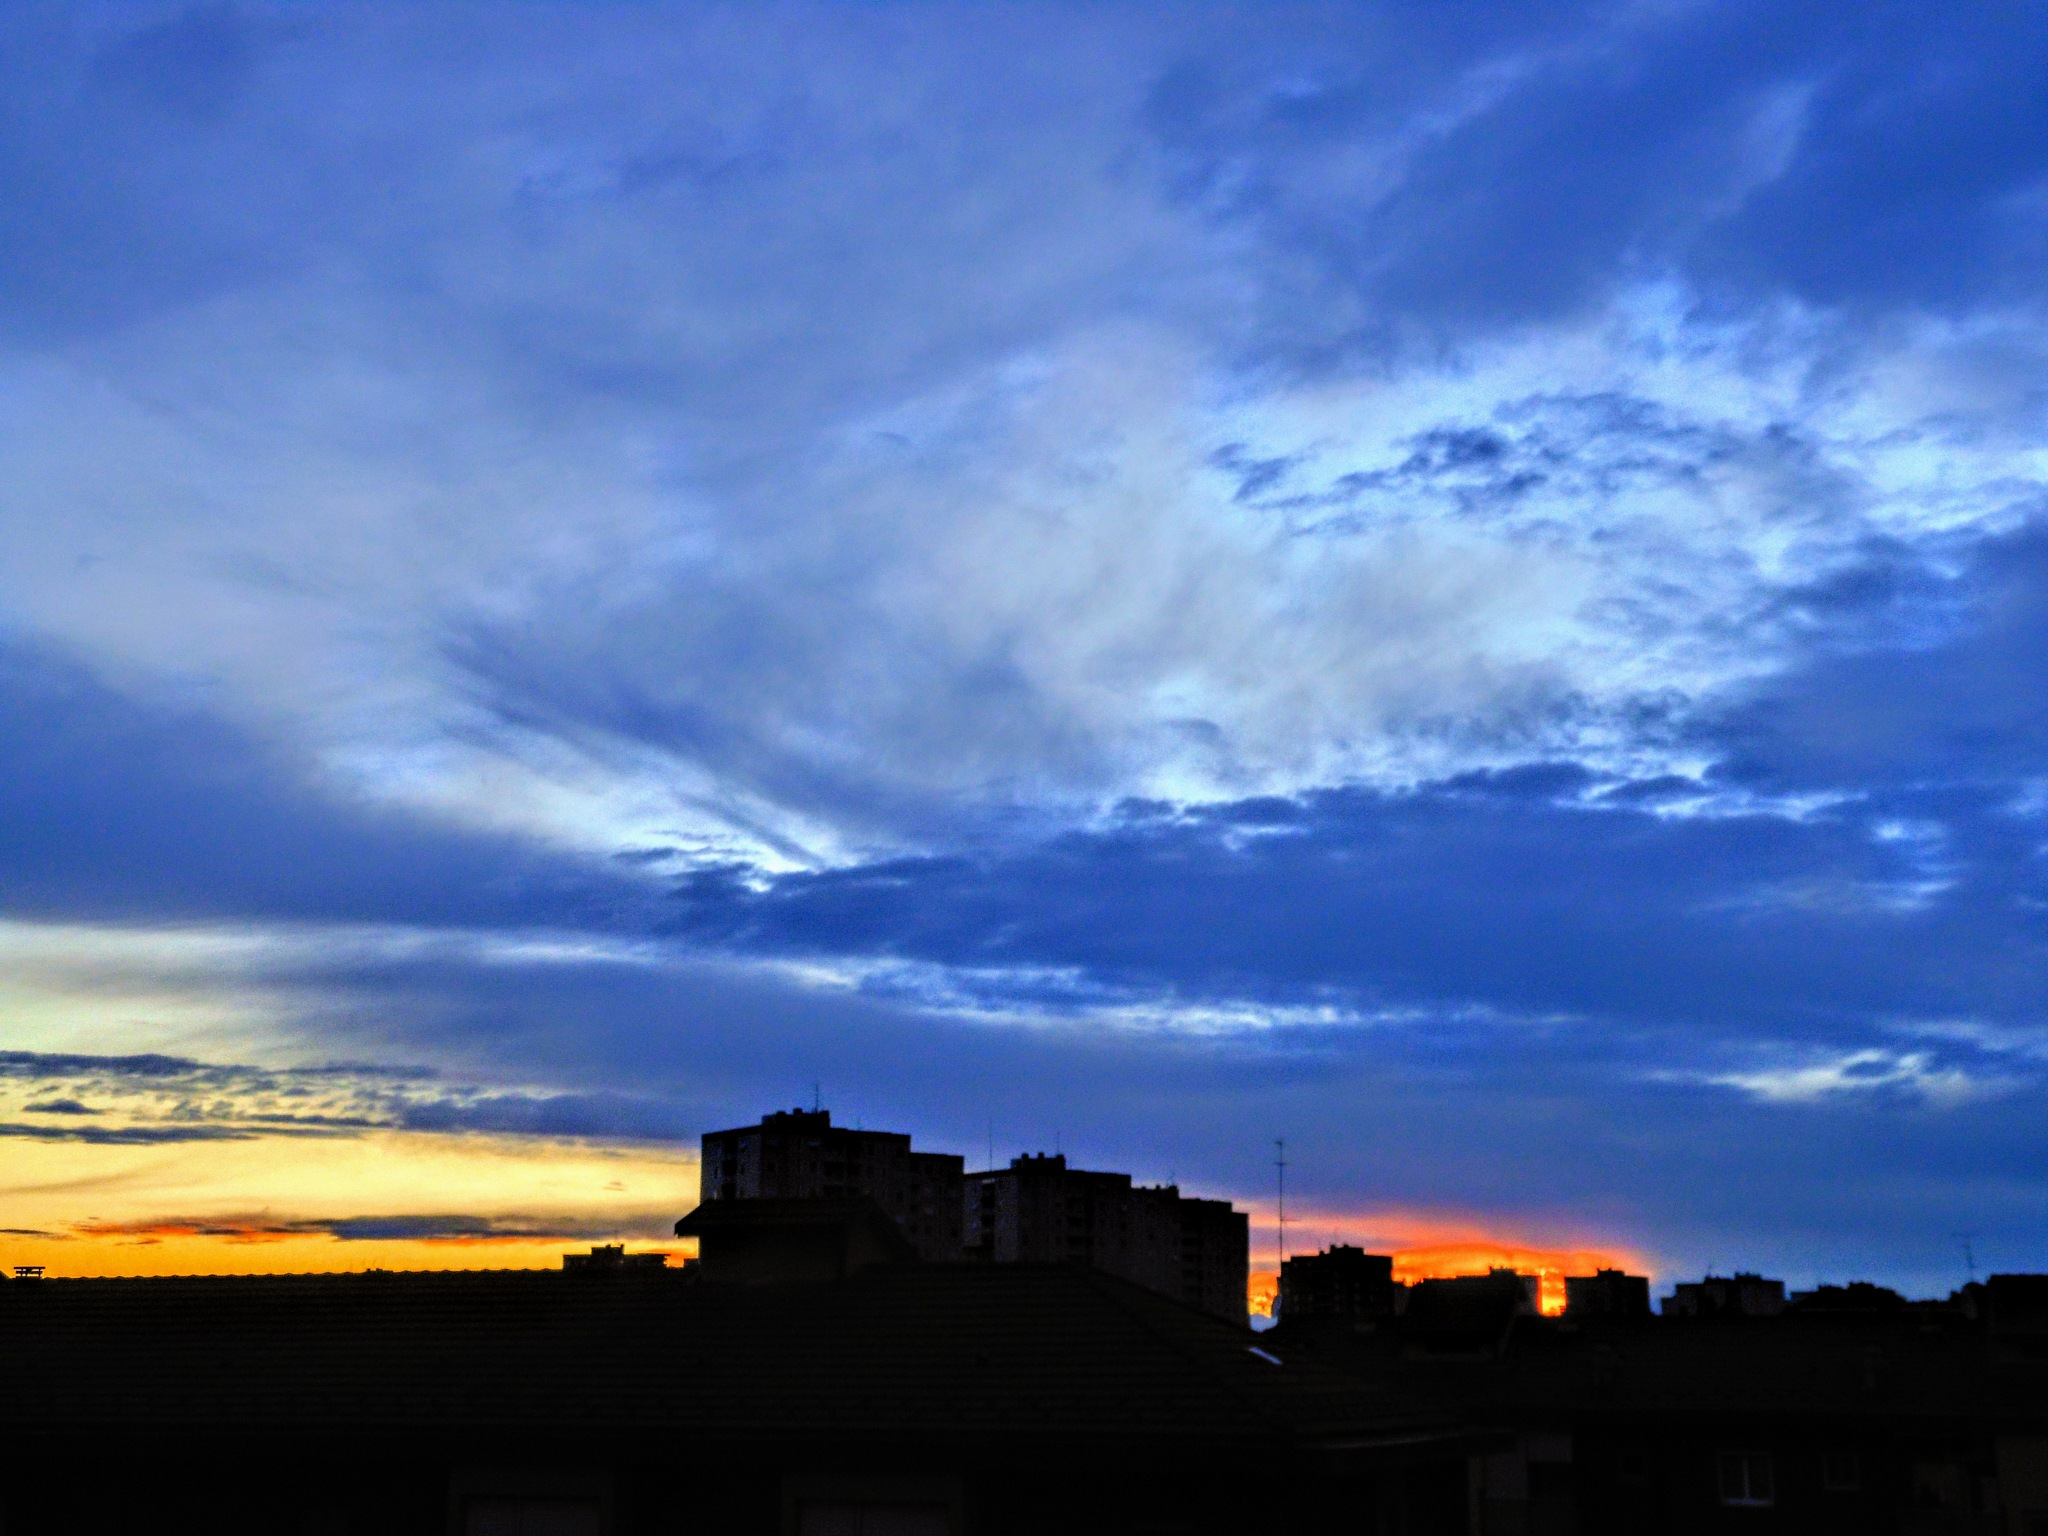 Evening sky in Milan by Paolo Pasquali